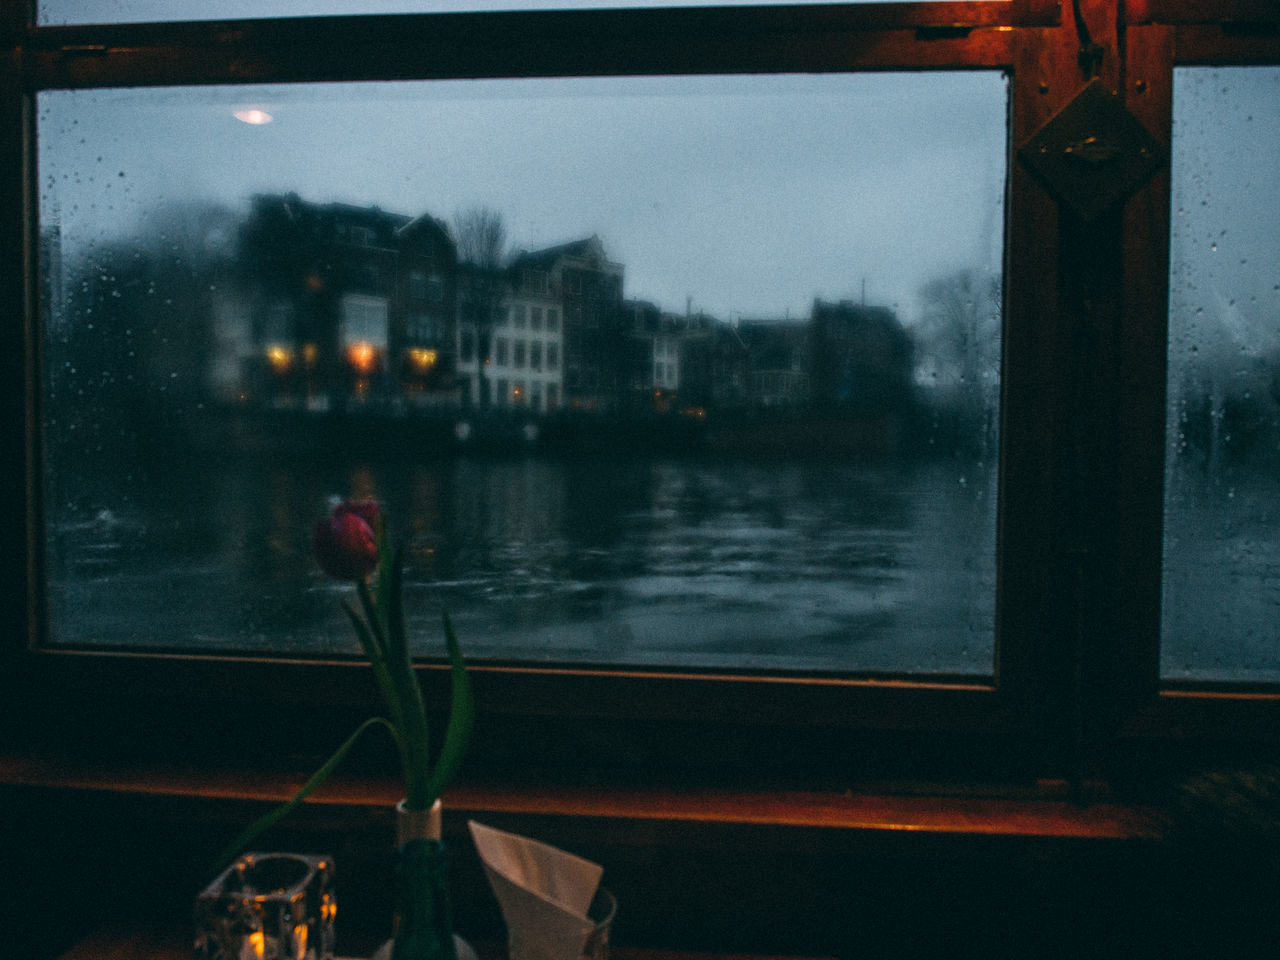 Amsterdam Beauty In Nature Close-up Flower Fragility Nature Netherlands No People Plant Sky Still Life The Street Photographer - 2017 EyeEm Awards Water Window